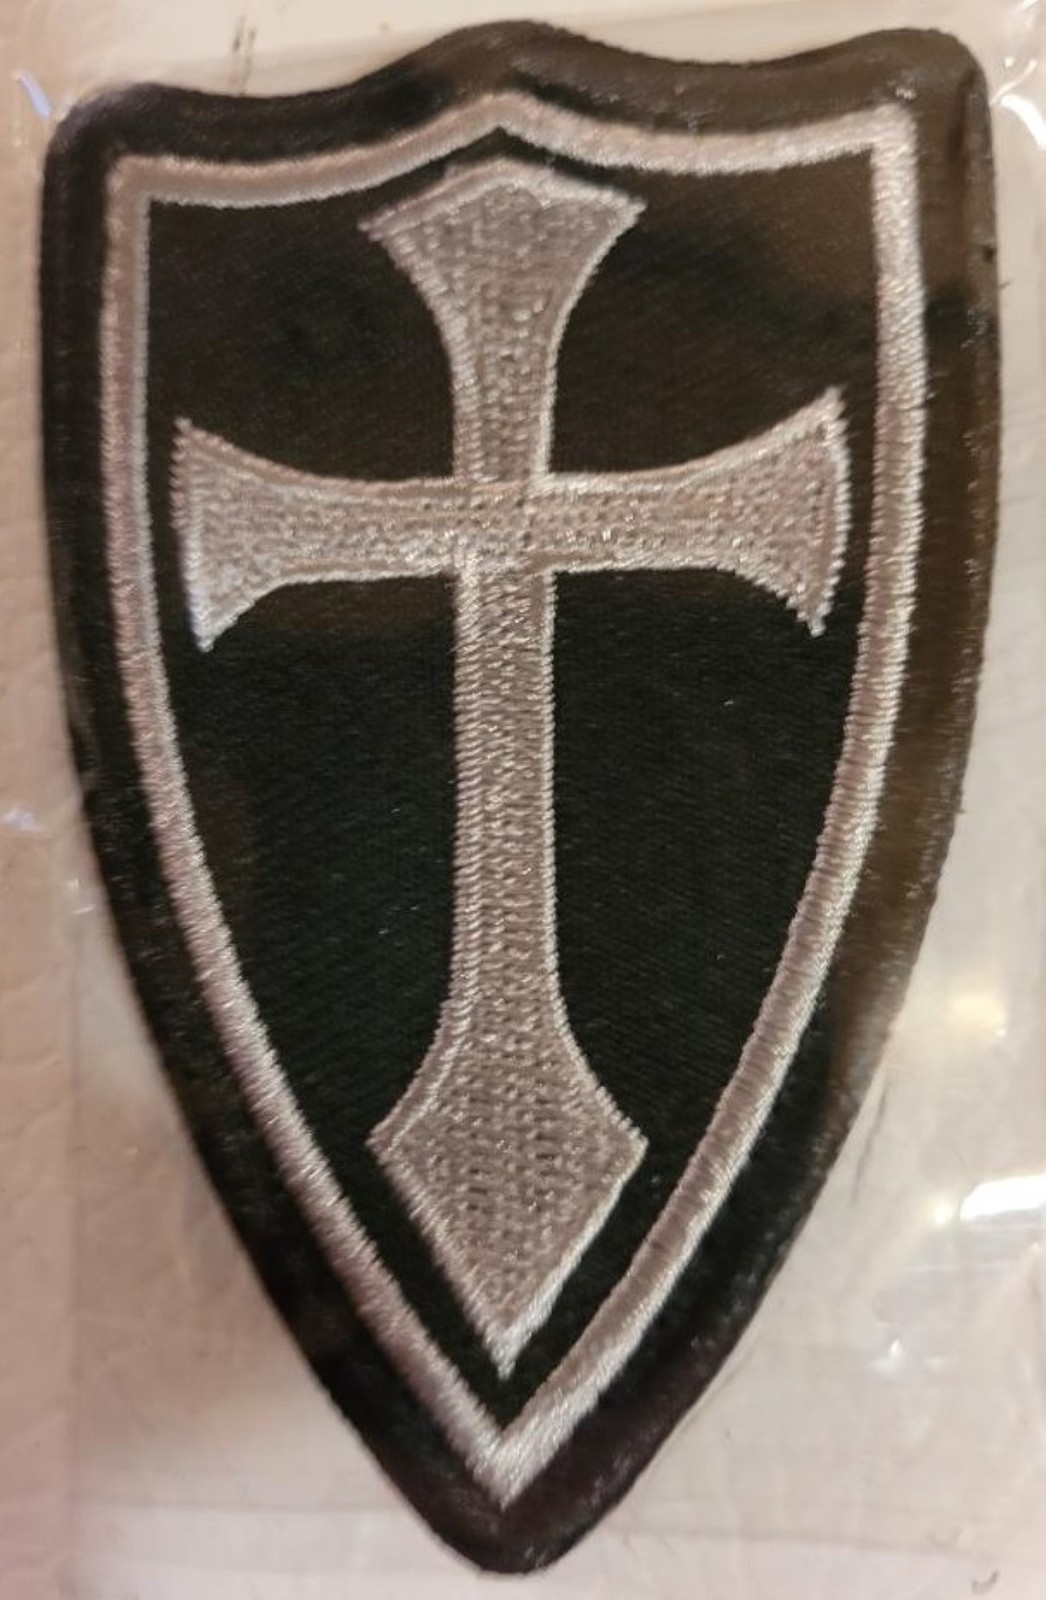 Knight's Templar White Cross on Shield Patch